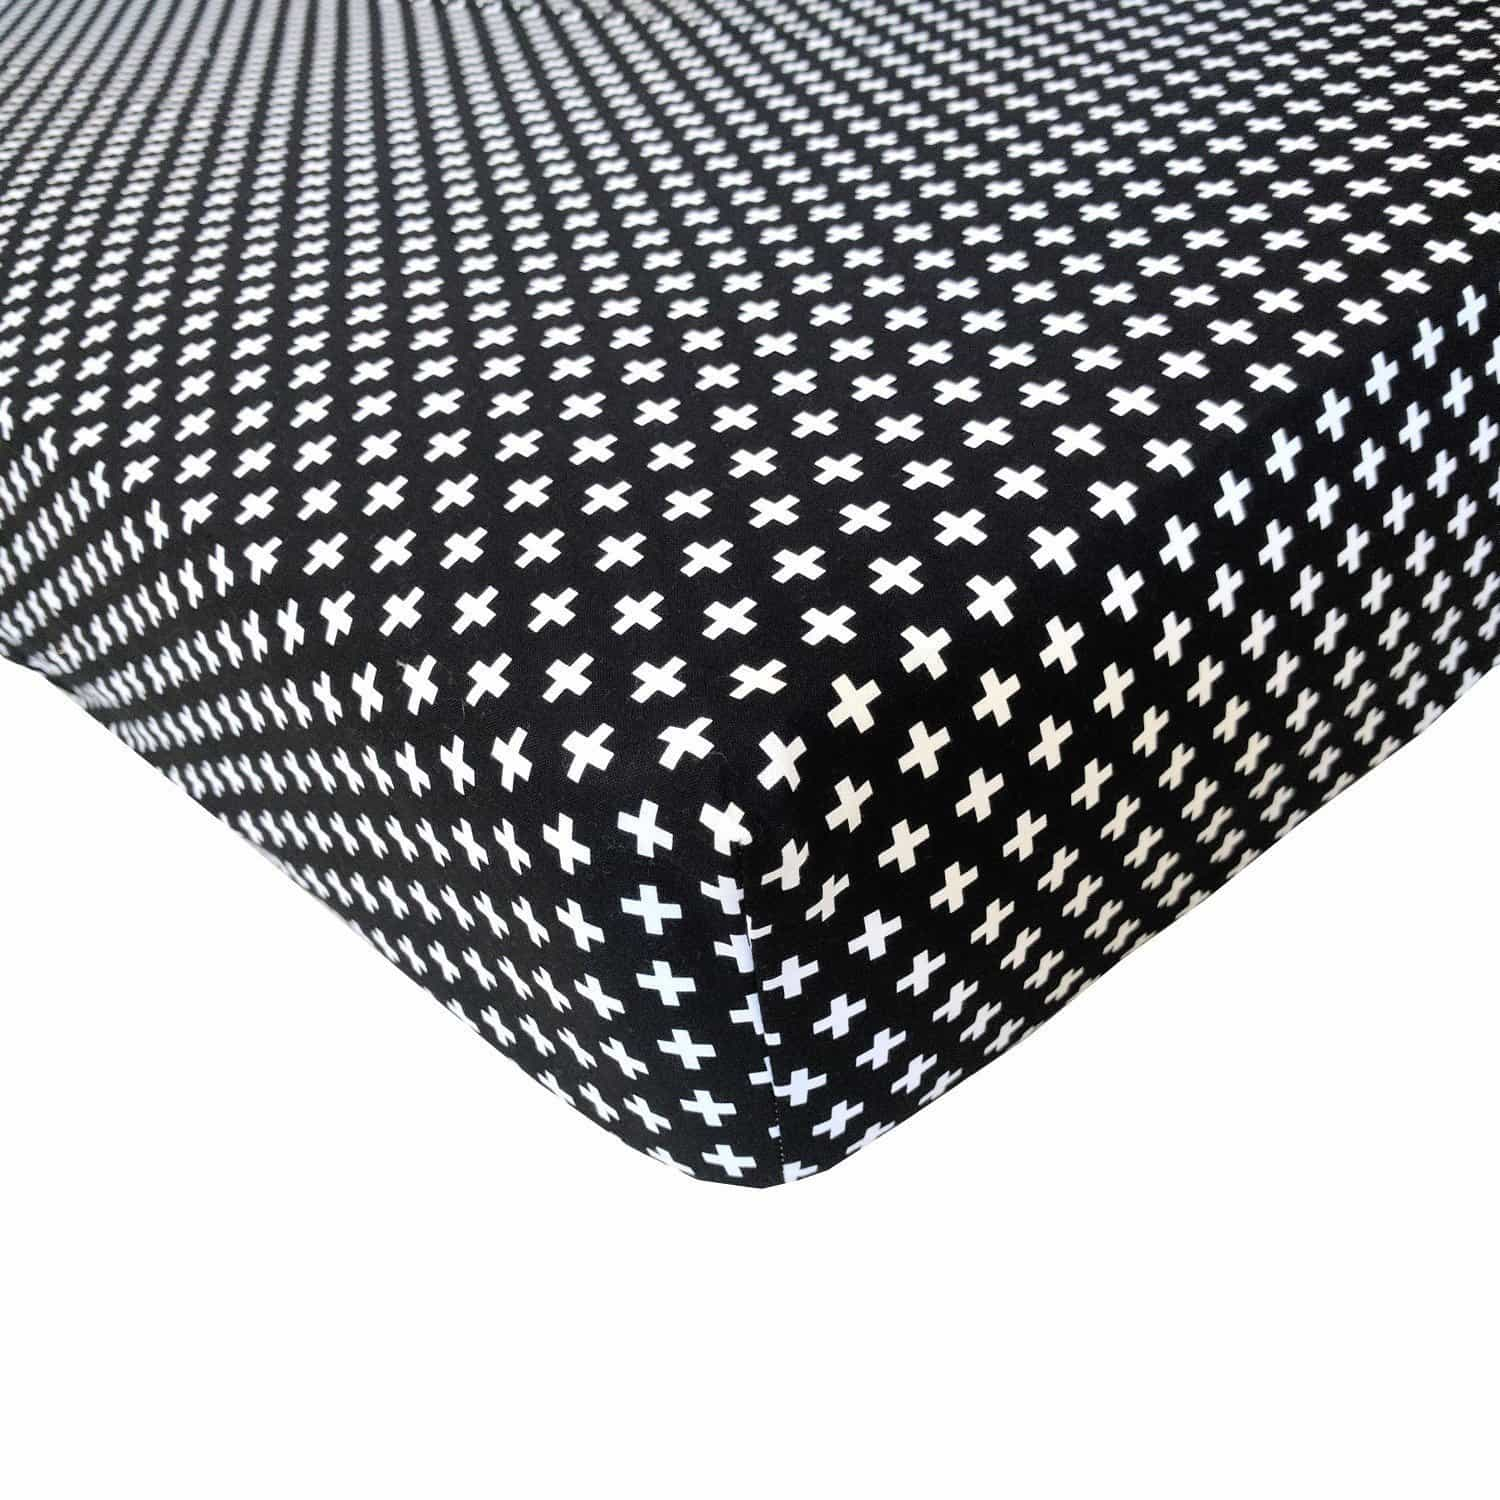 Crib Sheet | Black Swiss Cross Black and White Crib Baby Bedding-Crib Sheets-Default-Jack and Jill Boutique